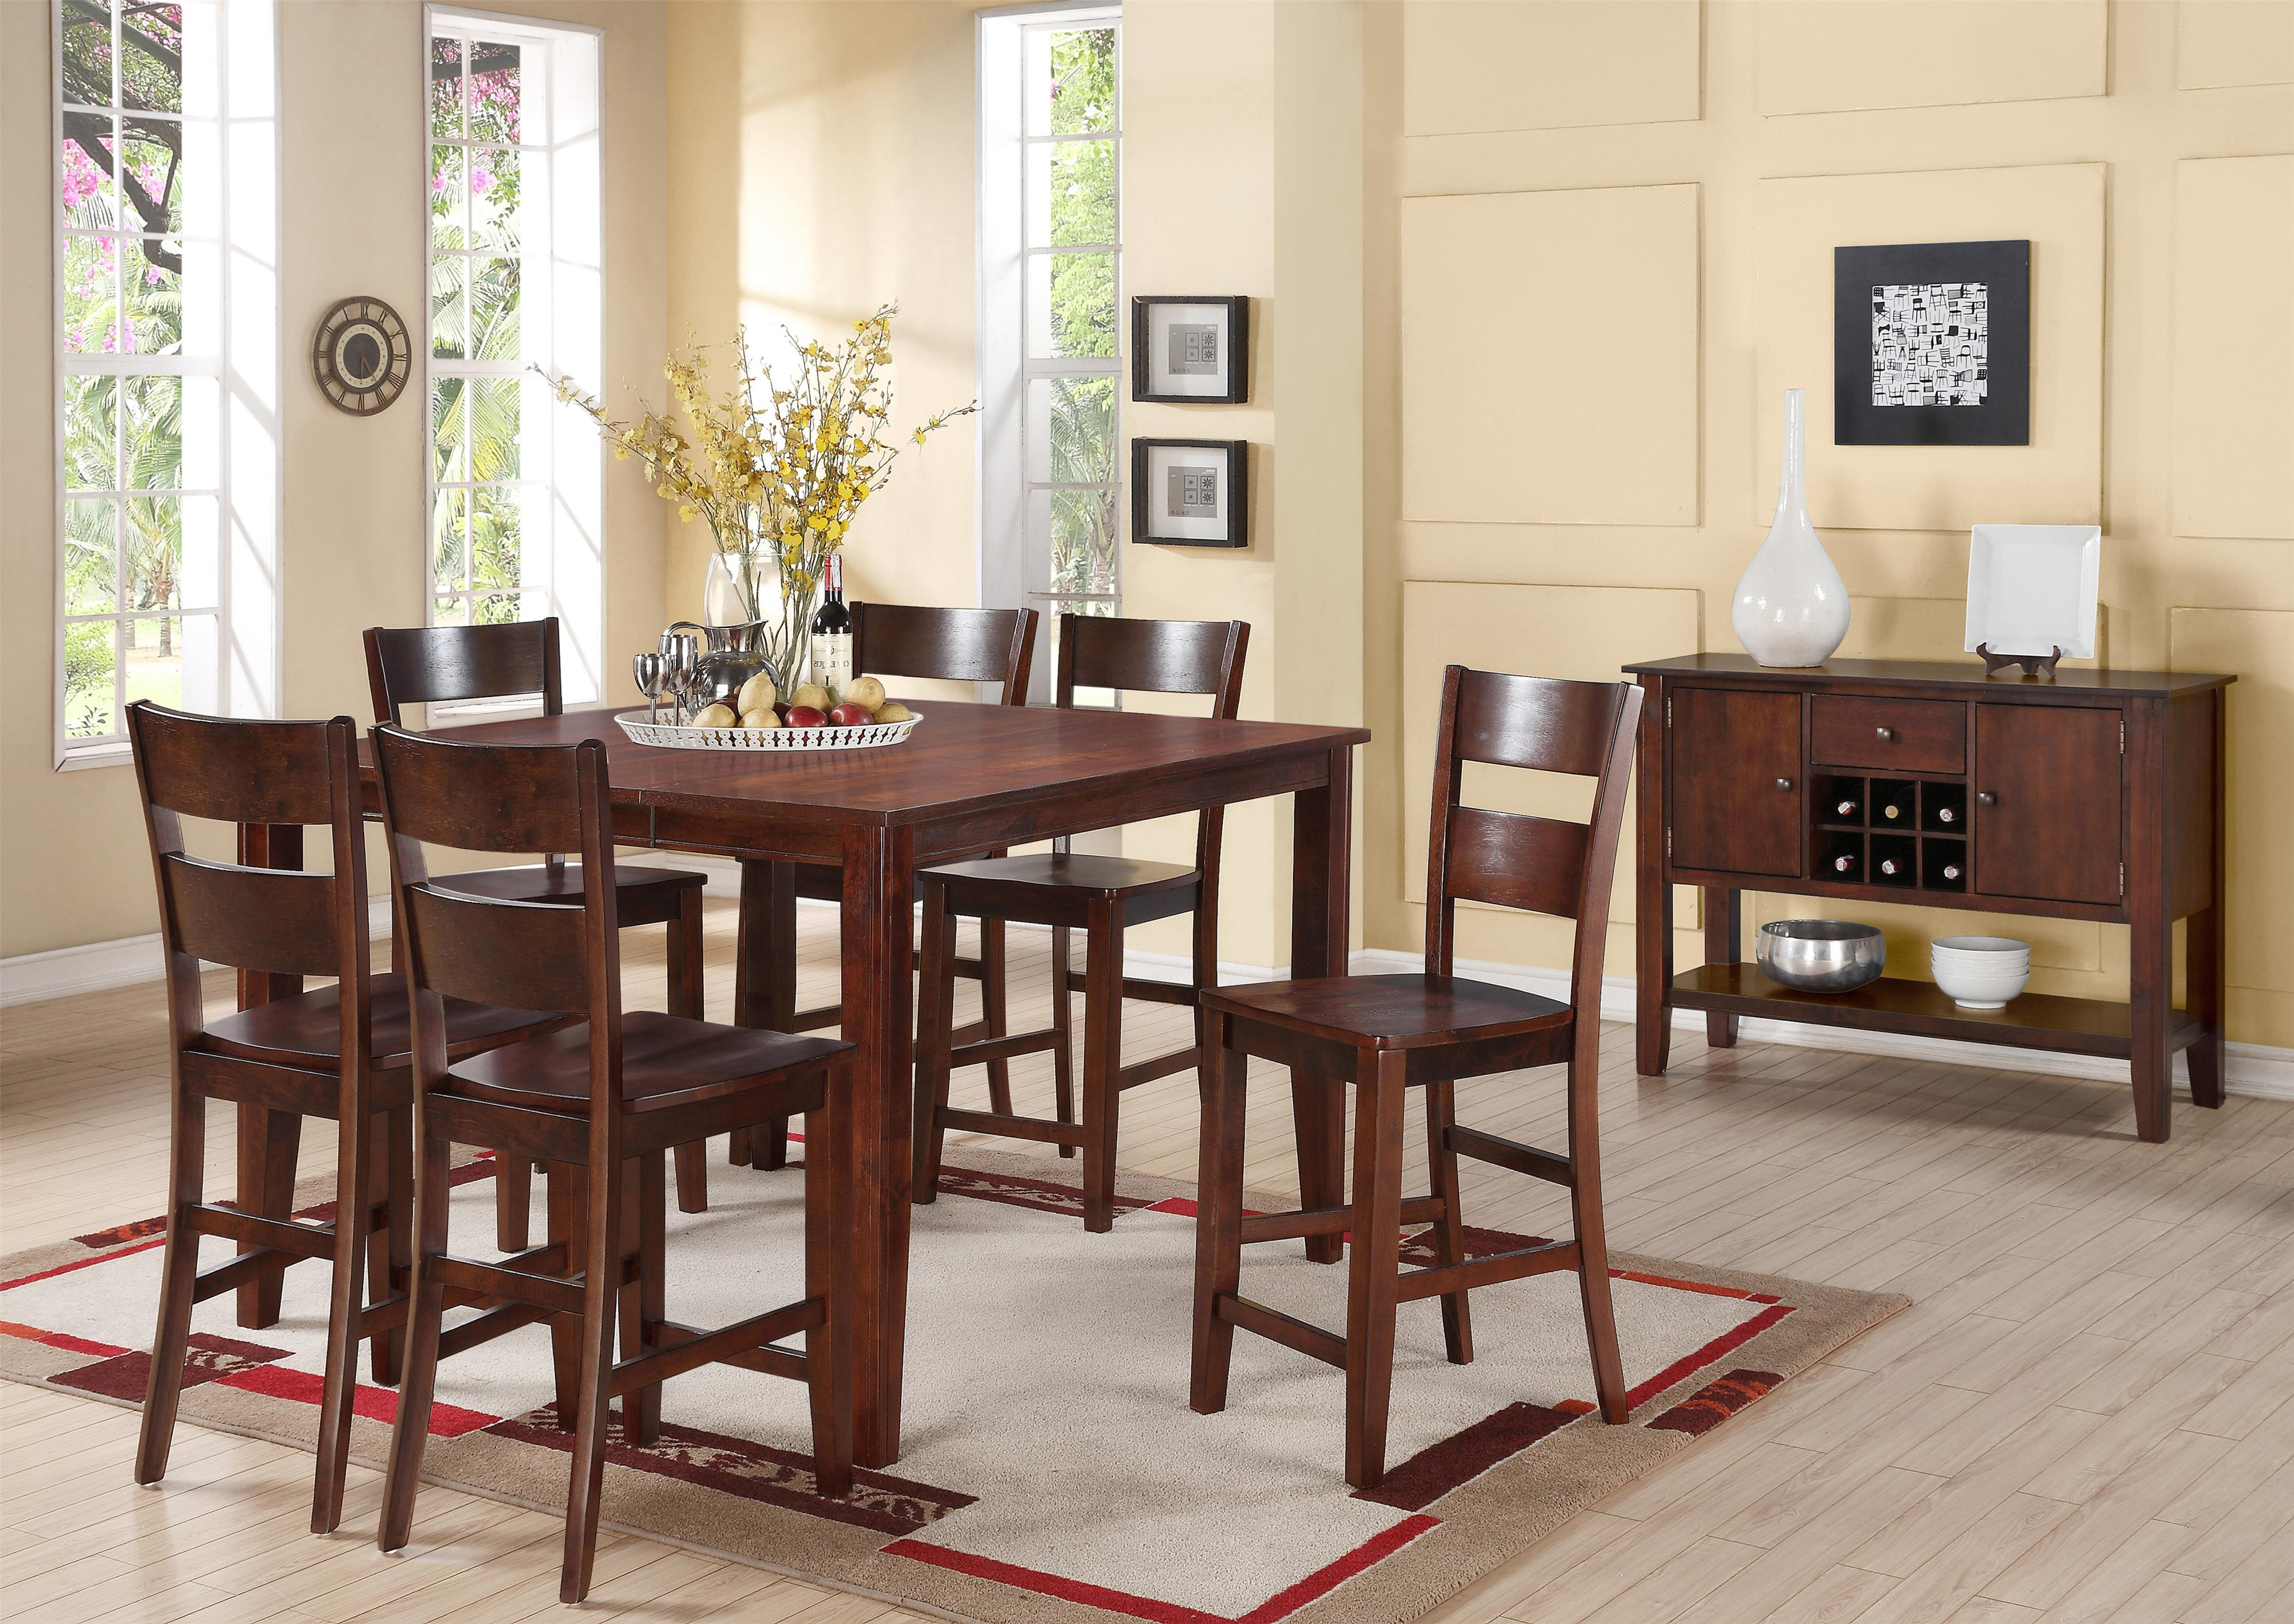 Holland House 8203 Square Counter Height Table With Tapered Legs | L Fish |  Pub Table